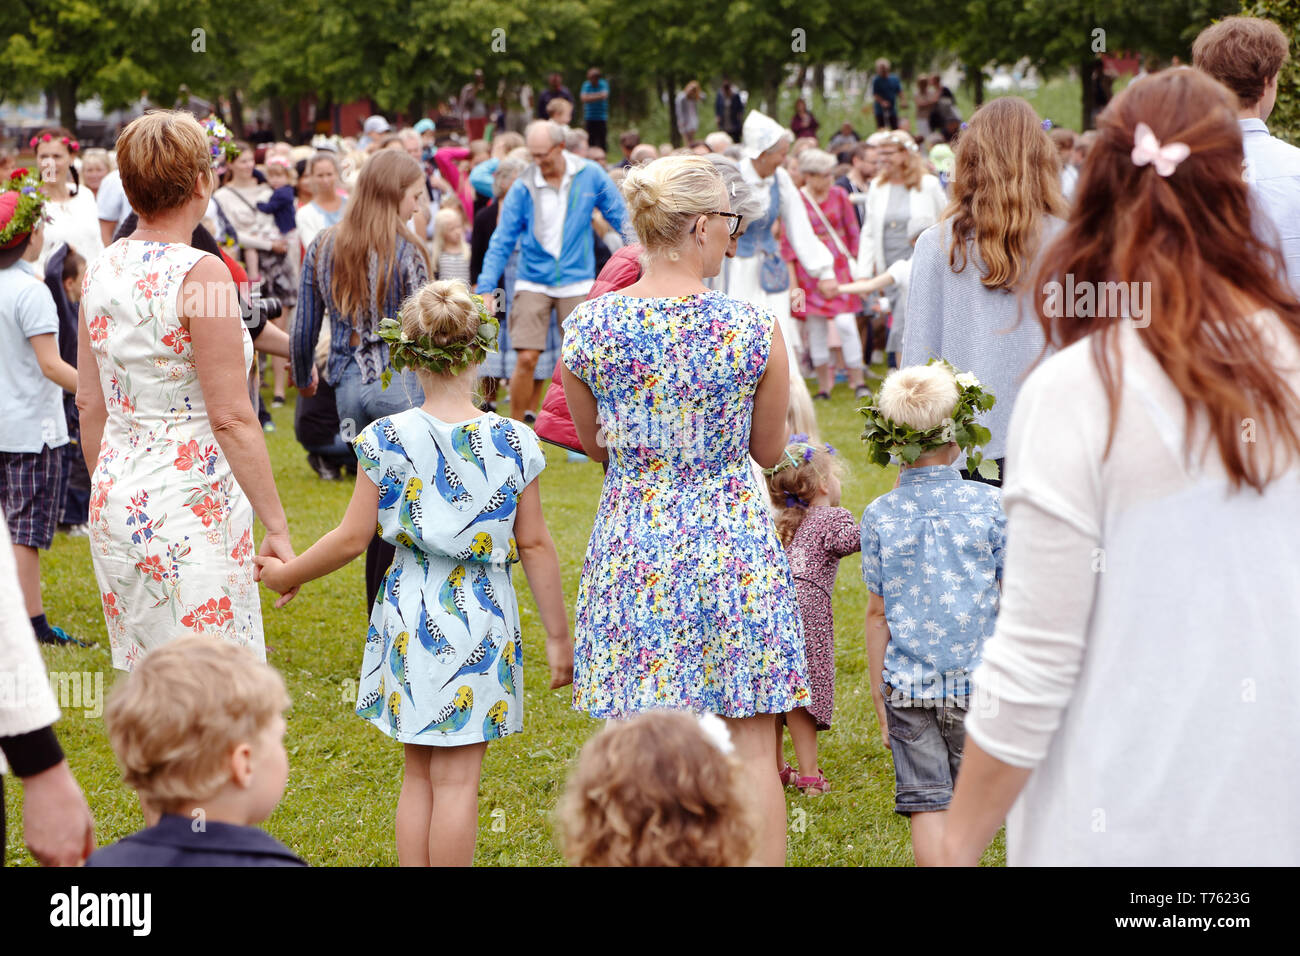 Mariefred, Sweden - June 24, 2016: People participate in the public traditional celebration of the midsummer holiday dancing around the midsummer pole Stock Photo